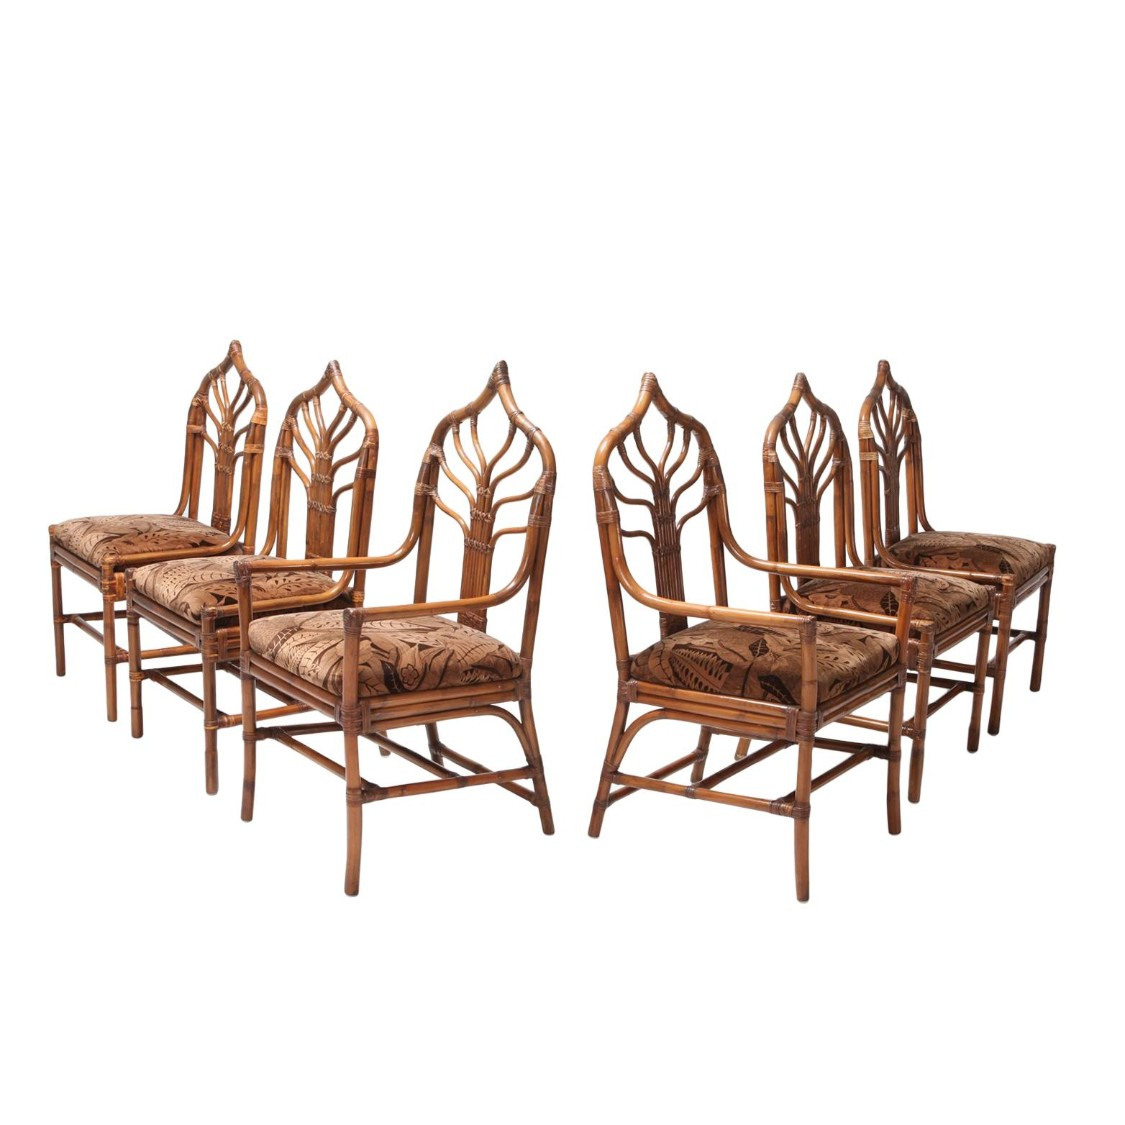 Regency Set Of Italian Bamboo Dining Chairs With Floral Cushions